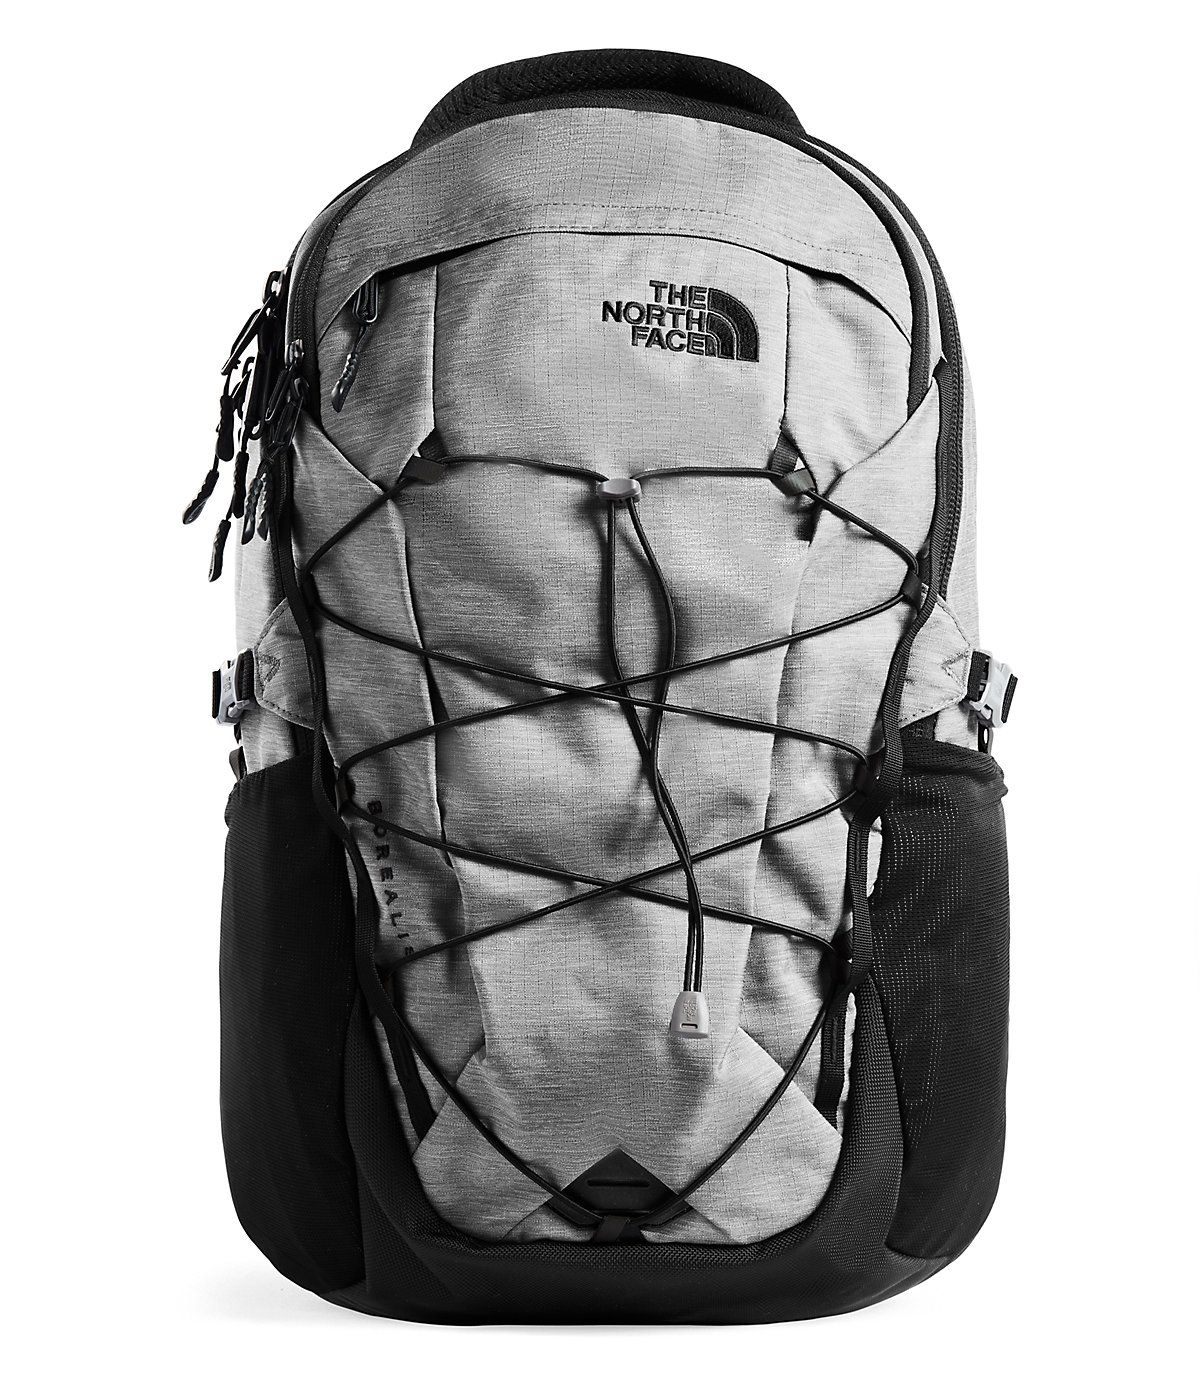 39ee1a12dbc The North Face Borealis Backpack (28 Liter) in 2019 | Products ...